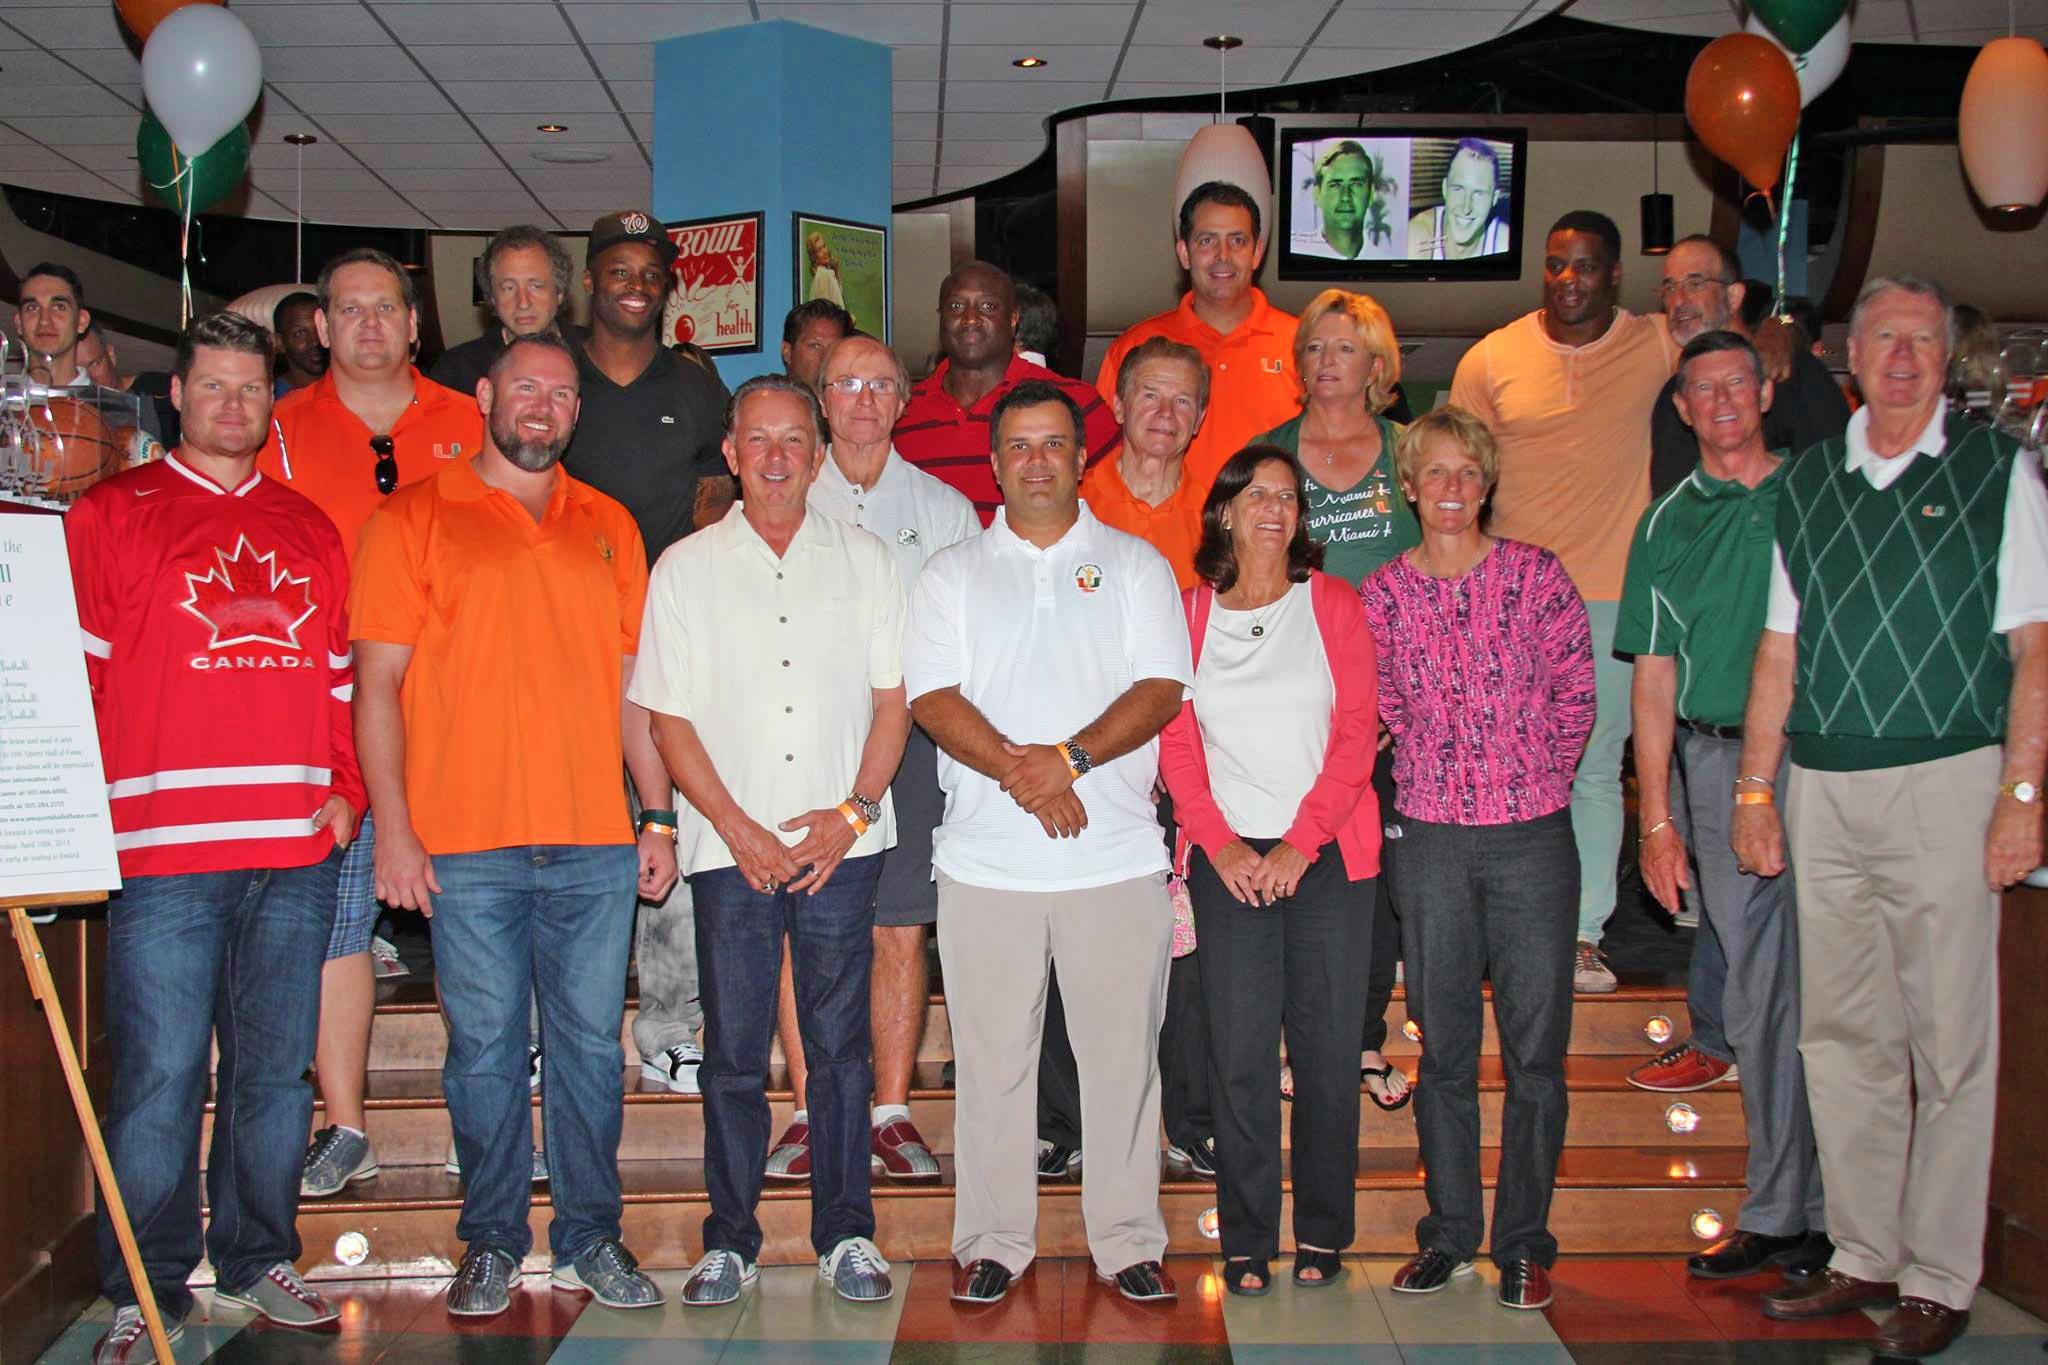 Last year, there were 18 Canes All-Stars on hand to bowl and raise money.